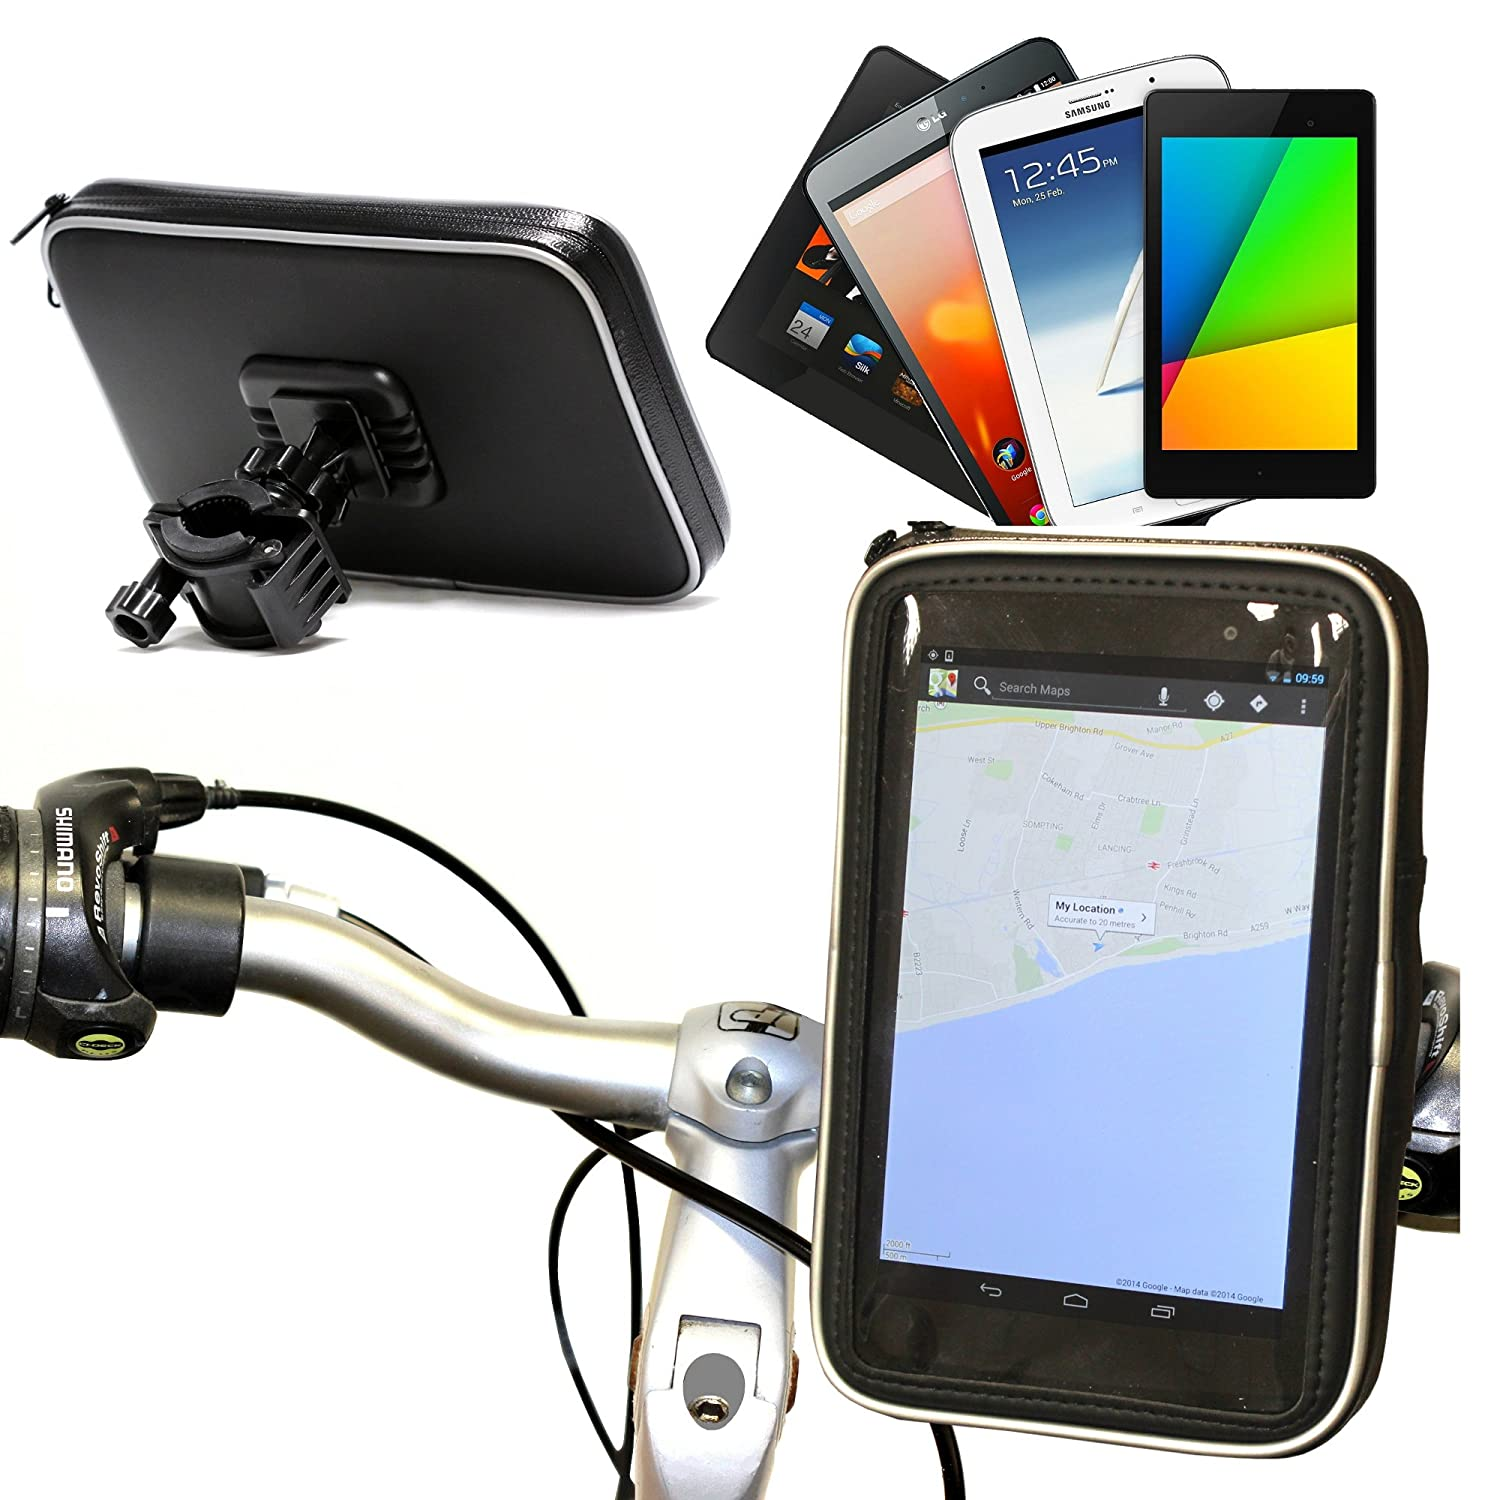 Motorbike & Bicycle Mount And Protective Water Resistant Case Suitable for all 7' Devices Including TomTom, Garmin, Navman, Navigon, eReaders, And Phone Brands. Including: Garmin Nuvi 2595lmt, Samsung Galaxy Tab P1000 & P1010, Eken 7' inch Google Android T